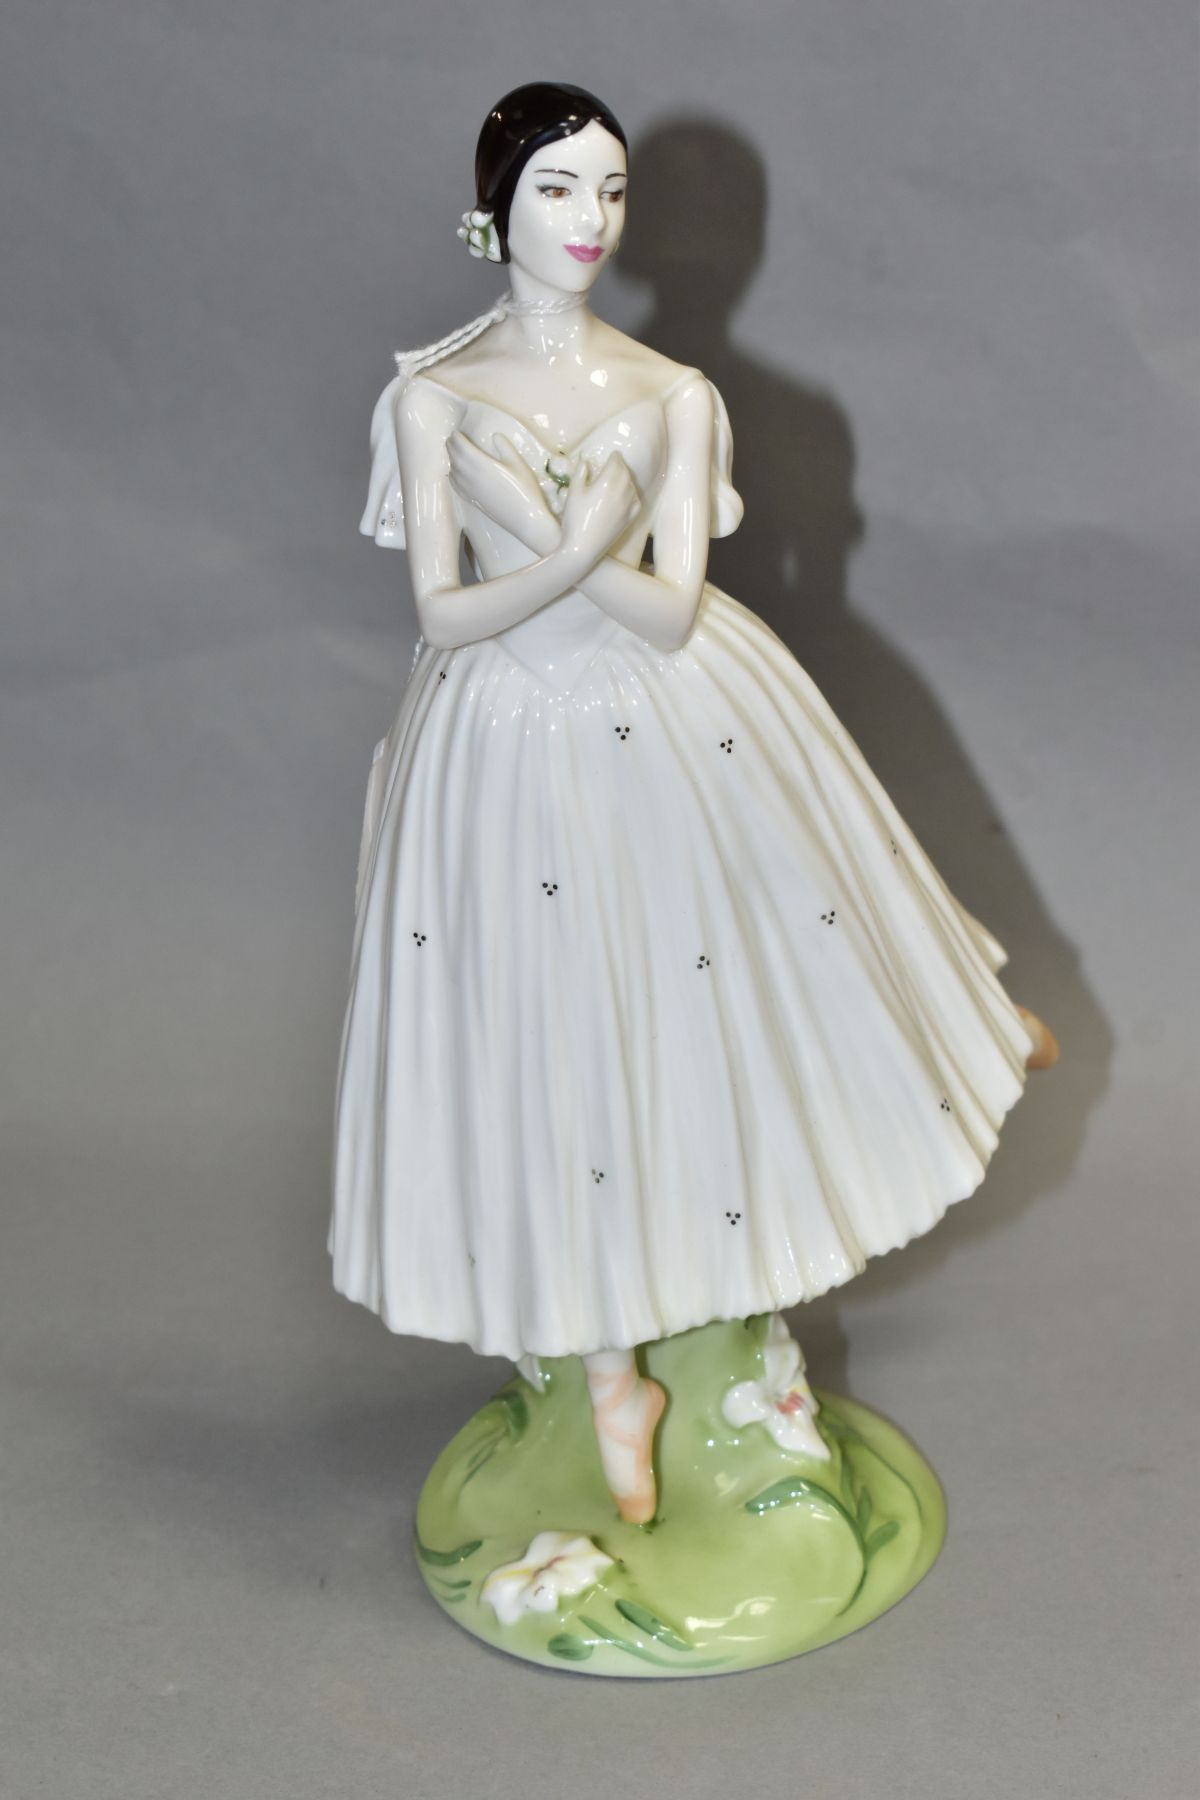 A LIMITED EDITION COALPORT FIGURE 'Dame Alicia Markova' from The Royal Academy of Dancing Collection